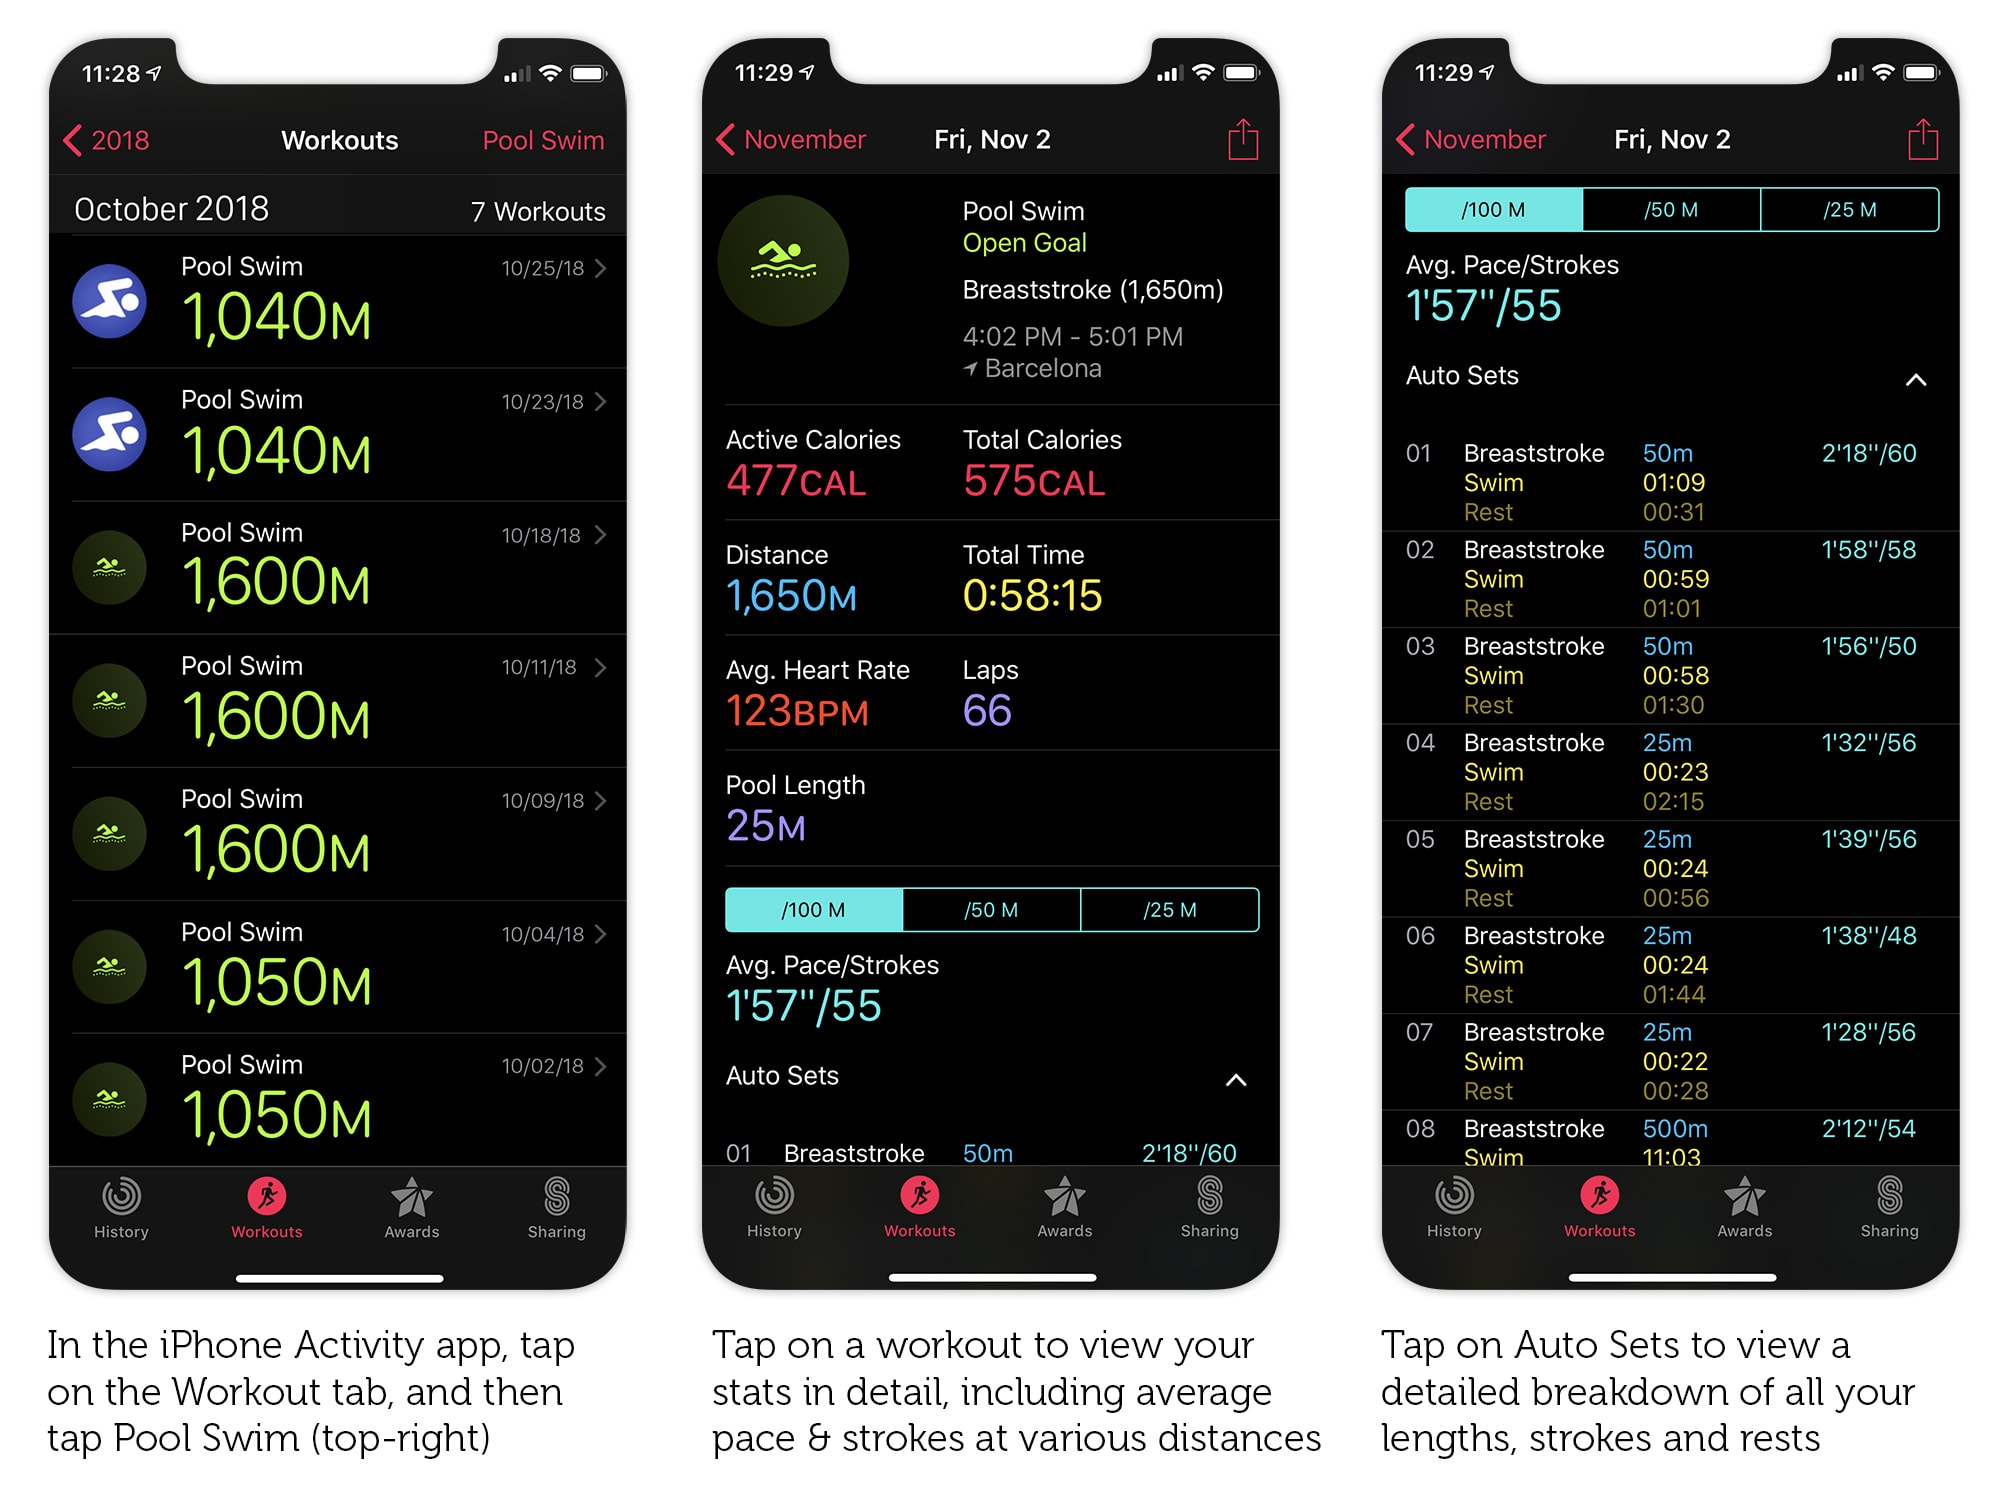 Get a detailed summary of your swimming workout in the Activity app.